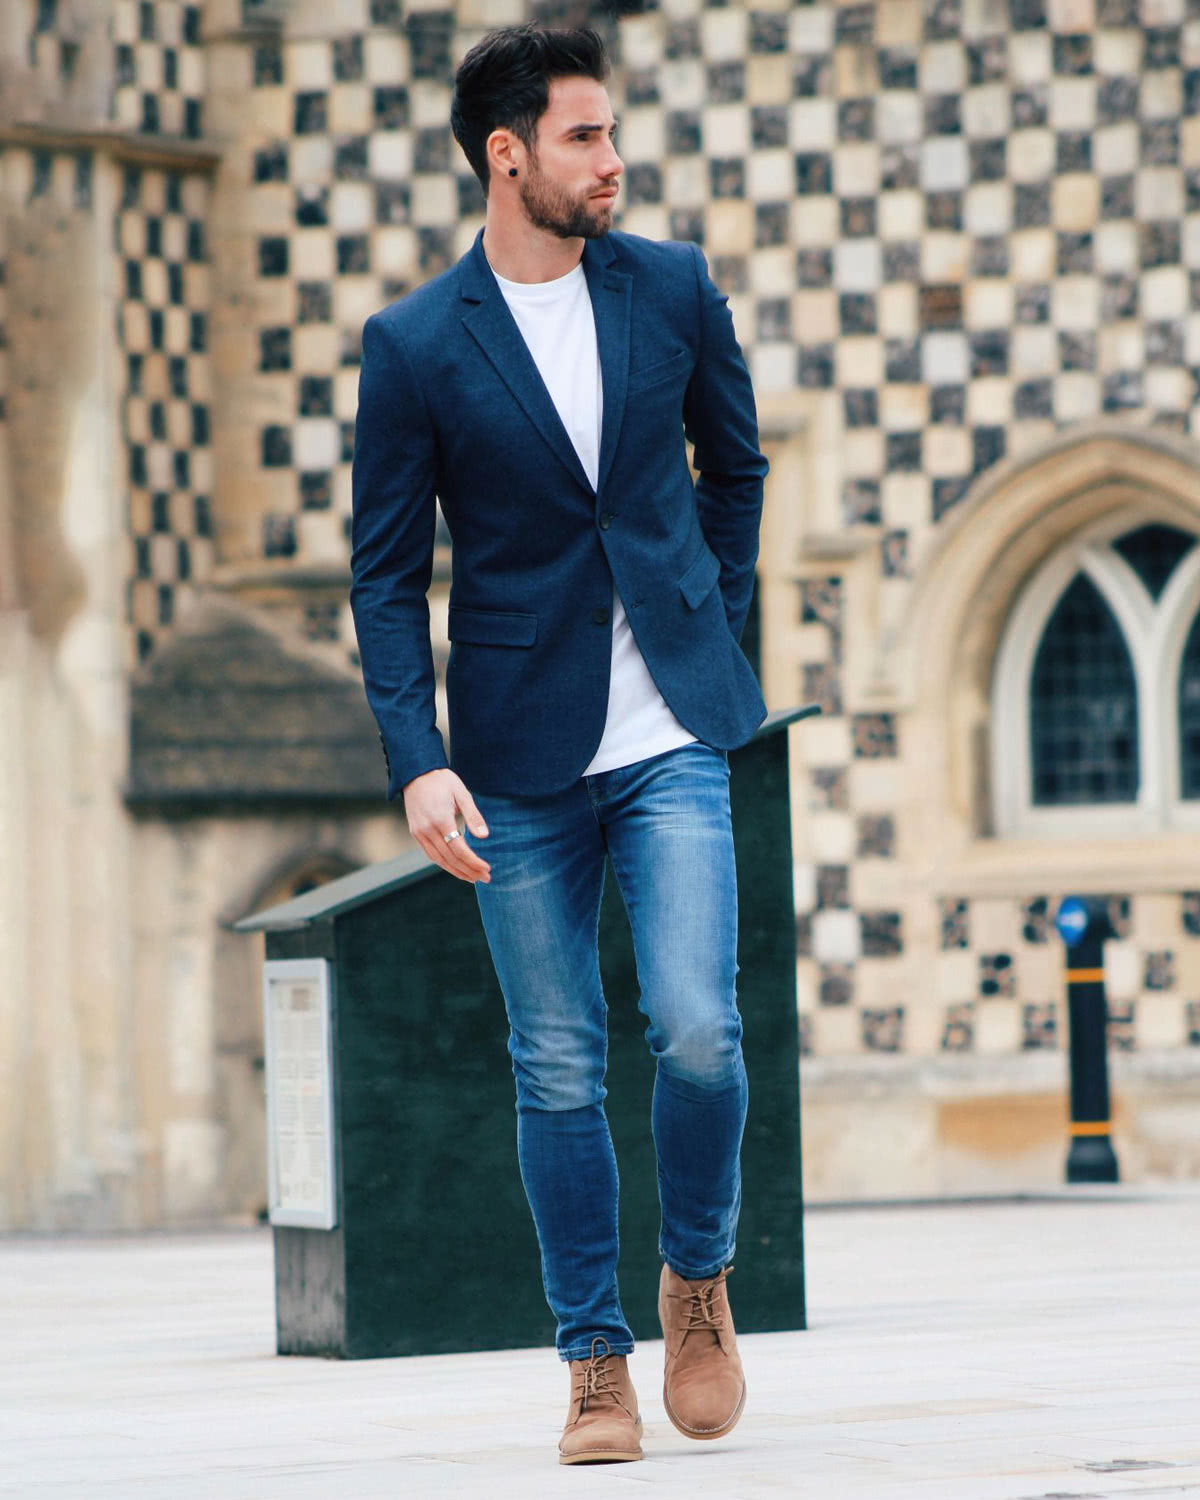 relaxed smart casual dress code men style - Luxe Digital